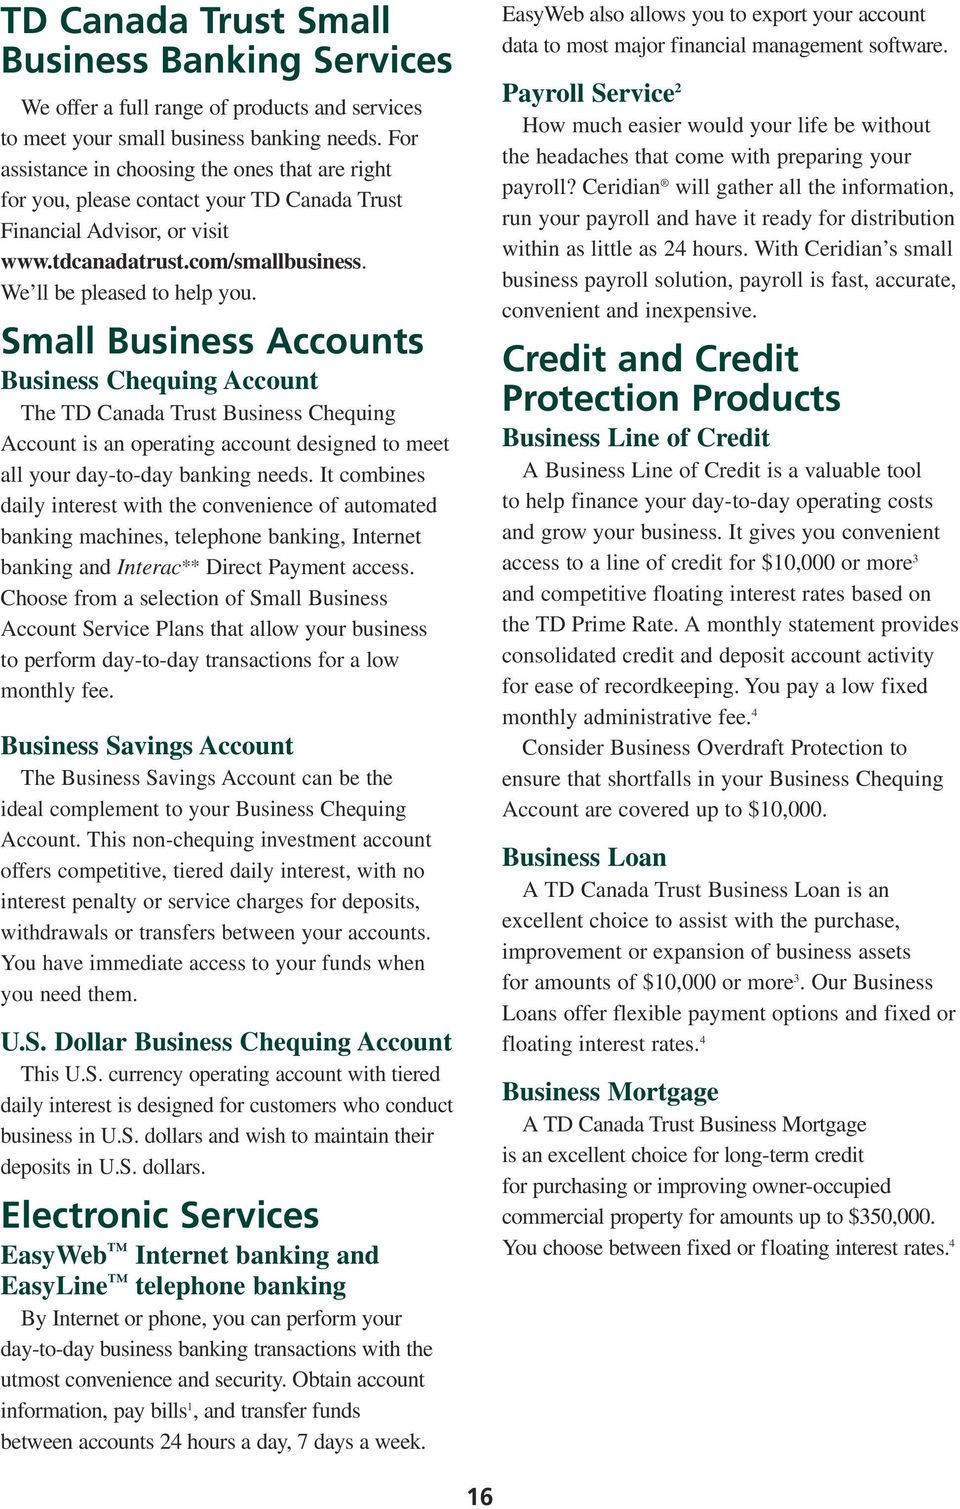 Small Business Accounts Business Chequing Account The TD Canada Trust Business Chequing Account is an operating account designed to meet all your day-to-day banking needs.